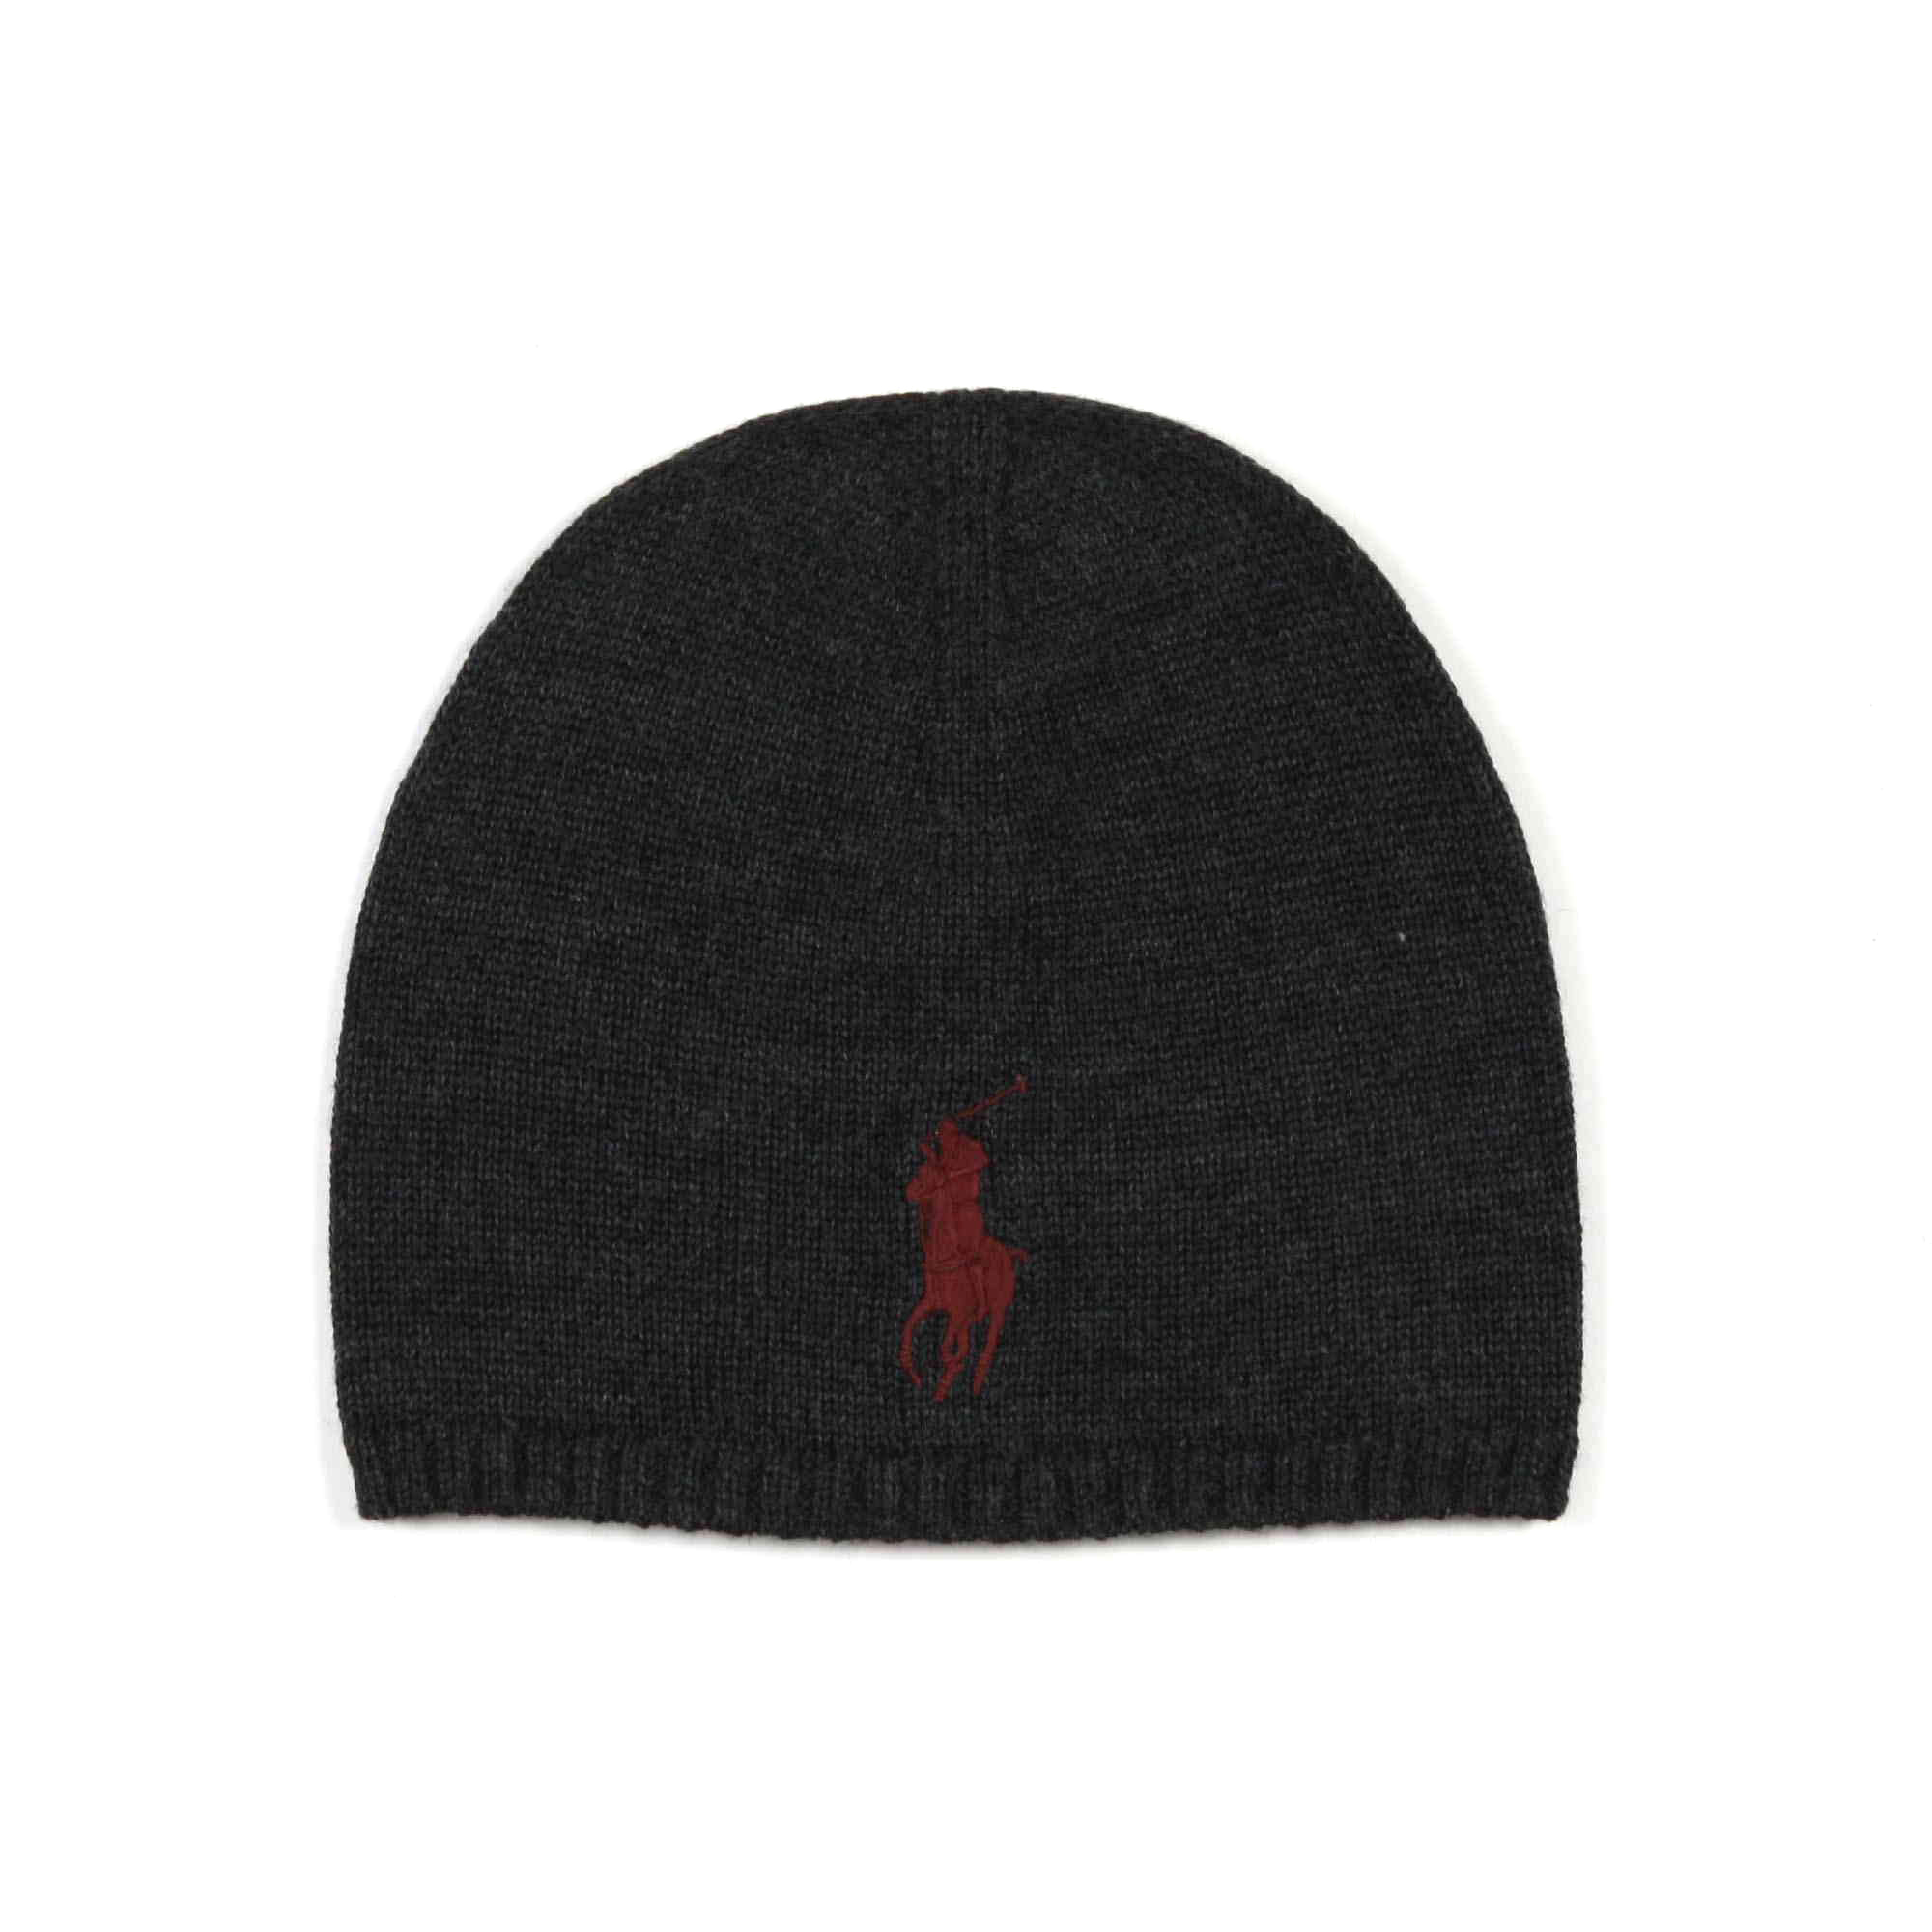 Home · RALPH LAUREN · Borse Cappelli Accessori Moda; Cappello Big Pony In  Lana Merino G. 505,ralph_lauren_cappello_big_pony_in_lana_meri,1